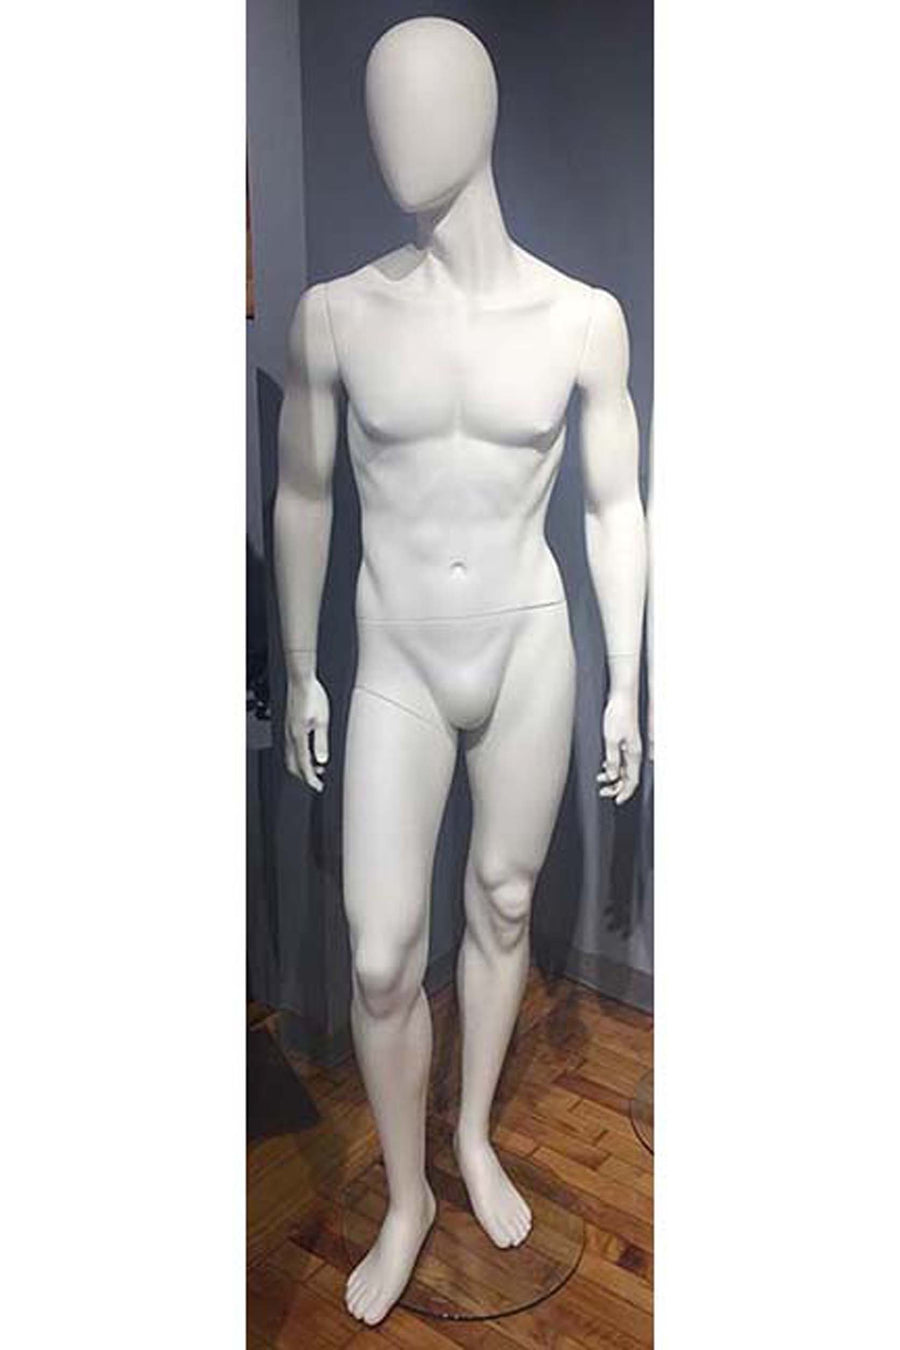 pure white male mannequin with blank face and relaxed arms and legs